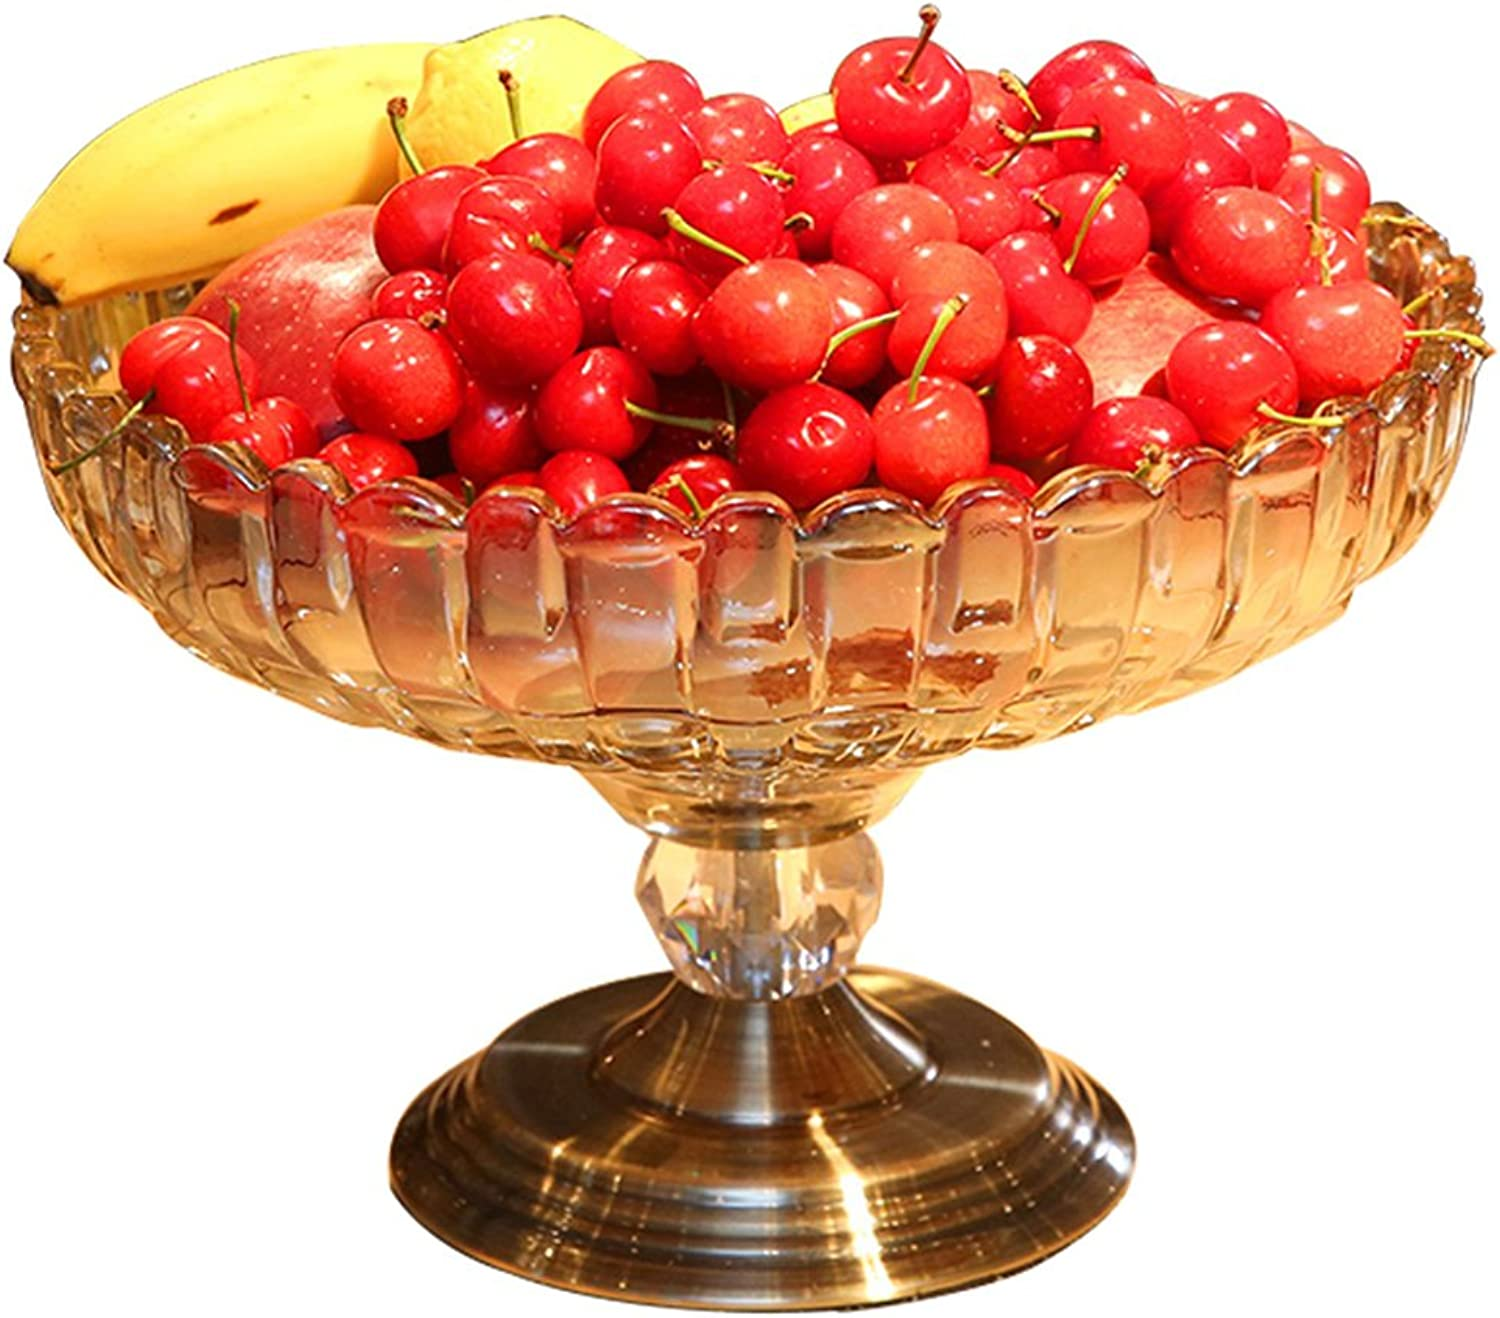 HOOPOO Plat de Fruits Décorations Pratiques Table Basse Simple Verre Bol De Fruits Maison Salon Décoration Haute Transparent Assiette De Noix De Fruits Porte-Fruits